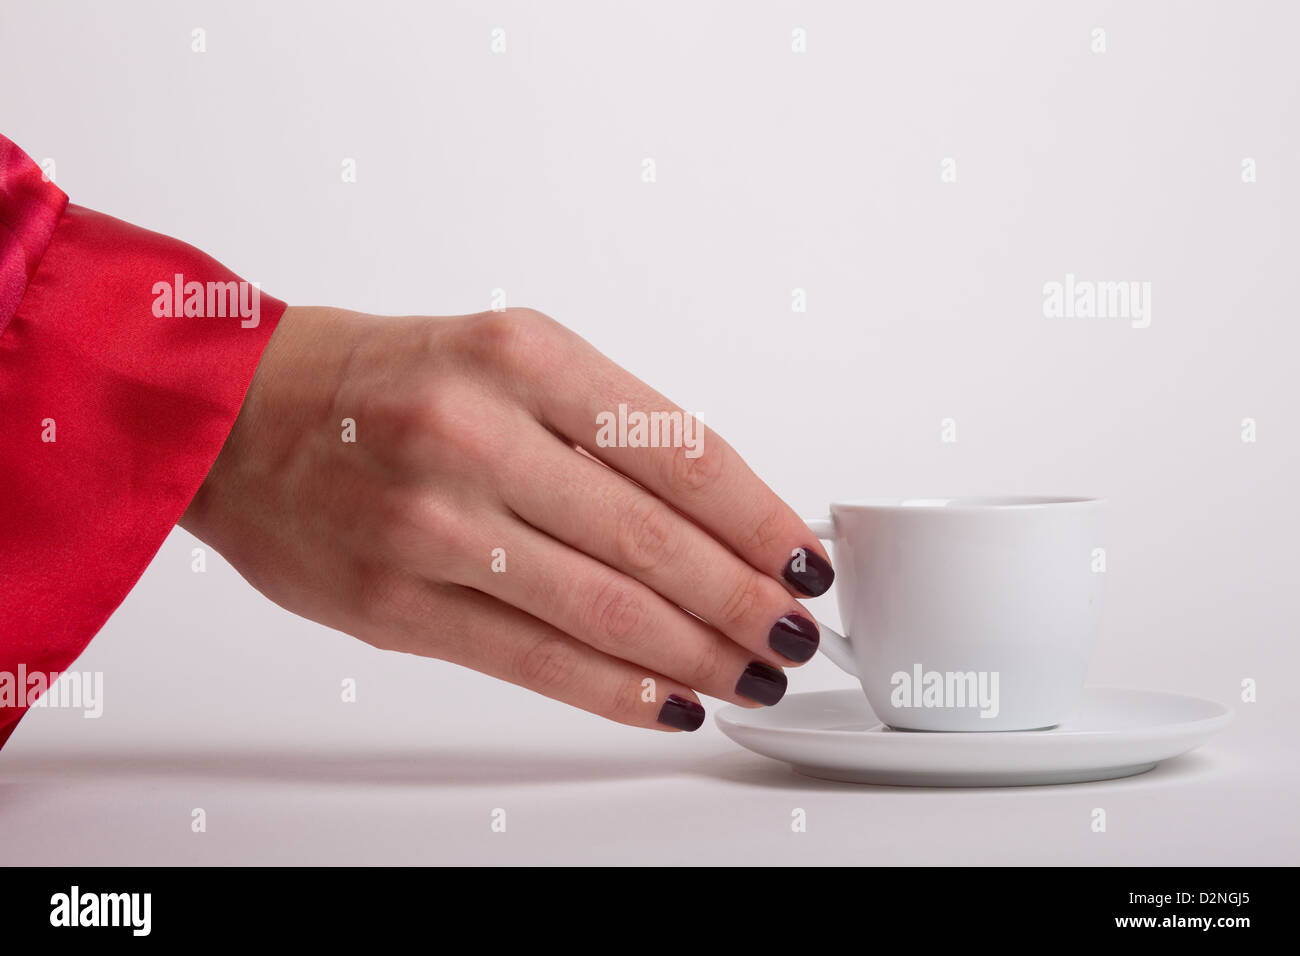 A woman wearing a red robe is reaching out for a morning white cup of espresso Stock Photo